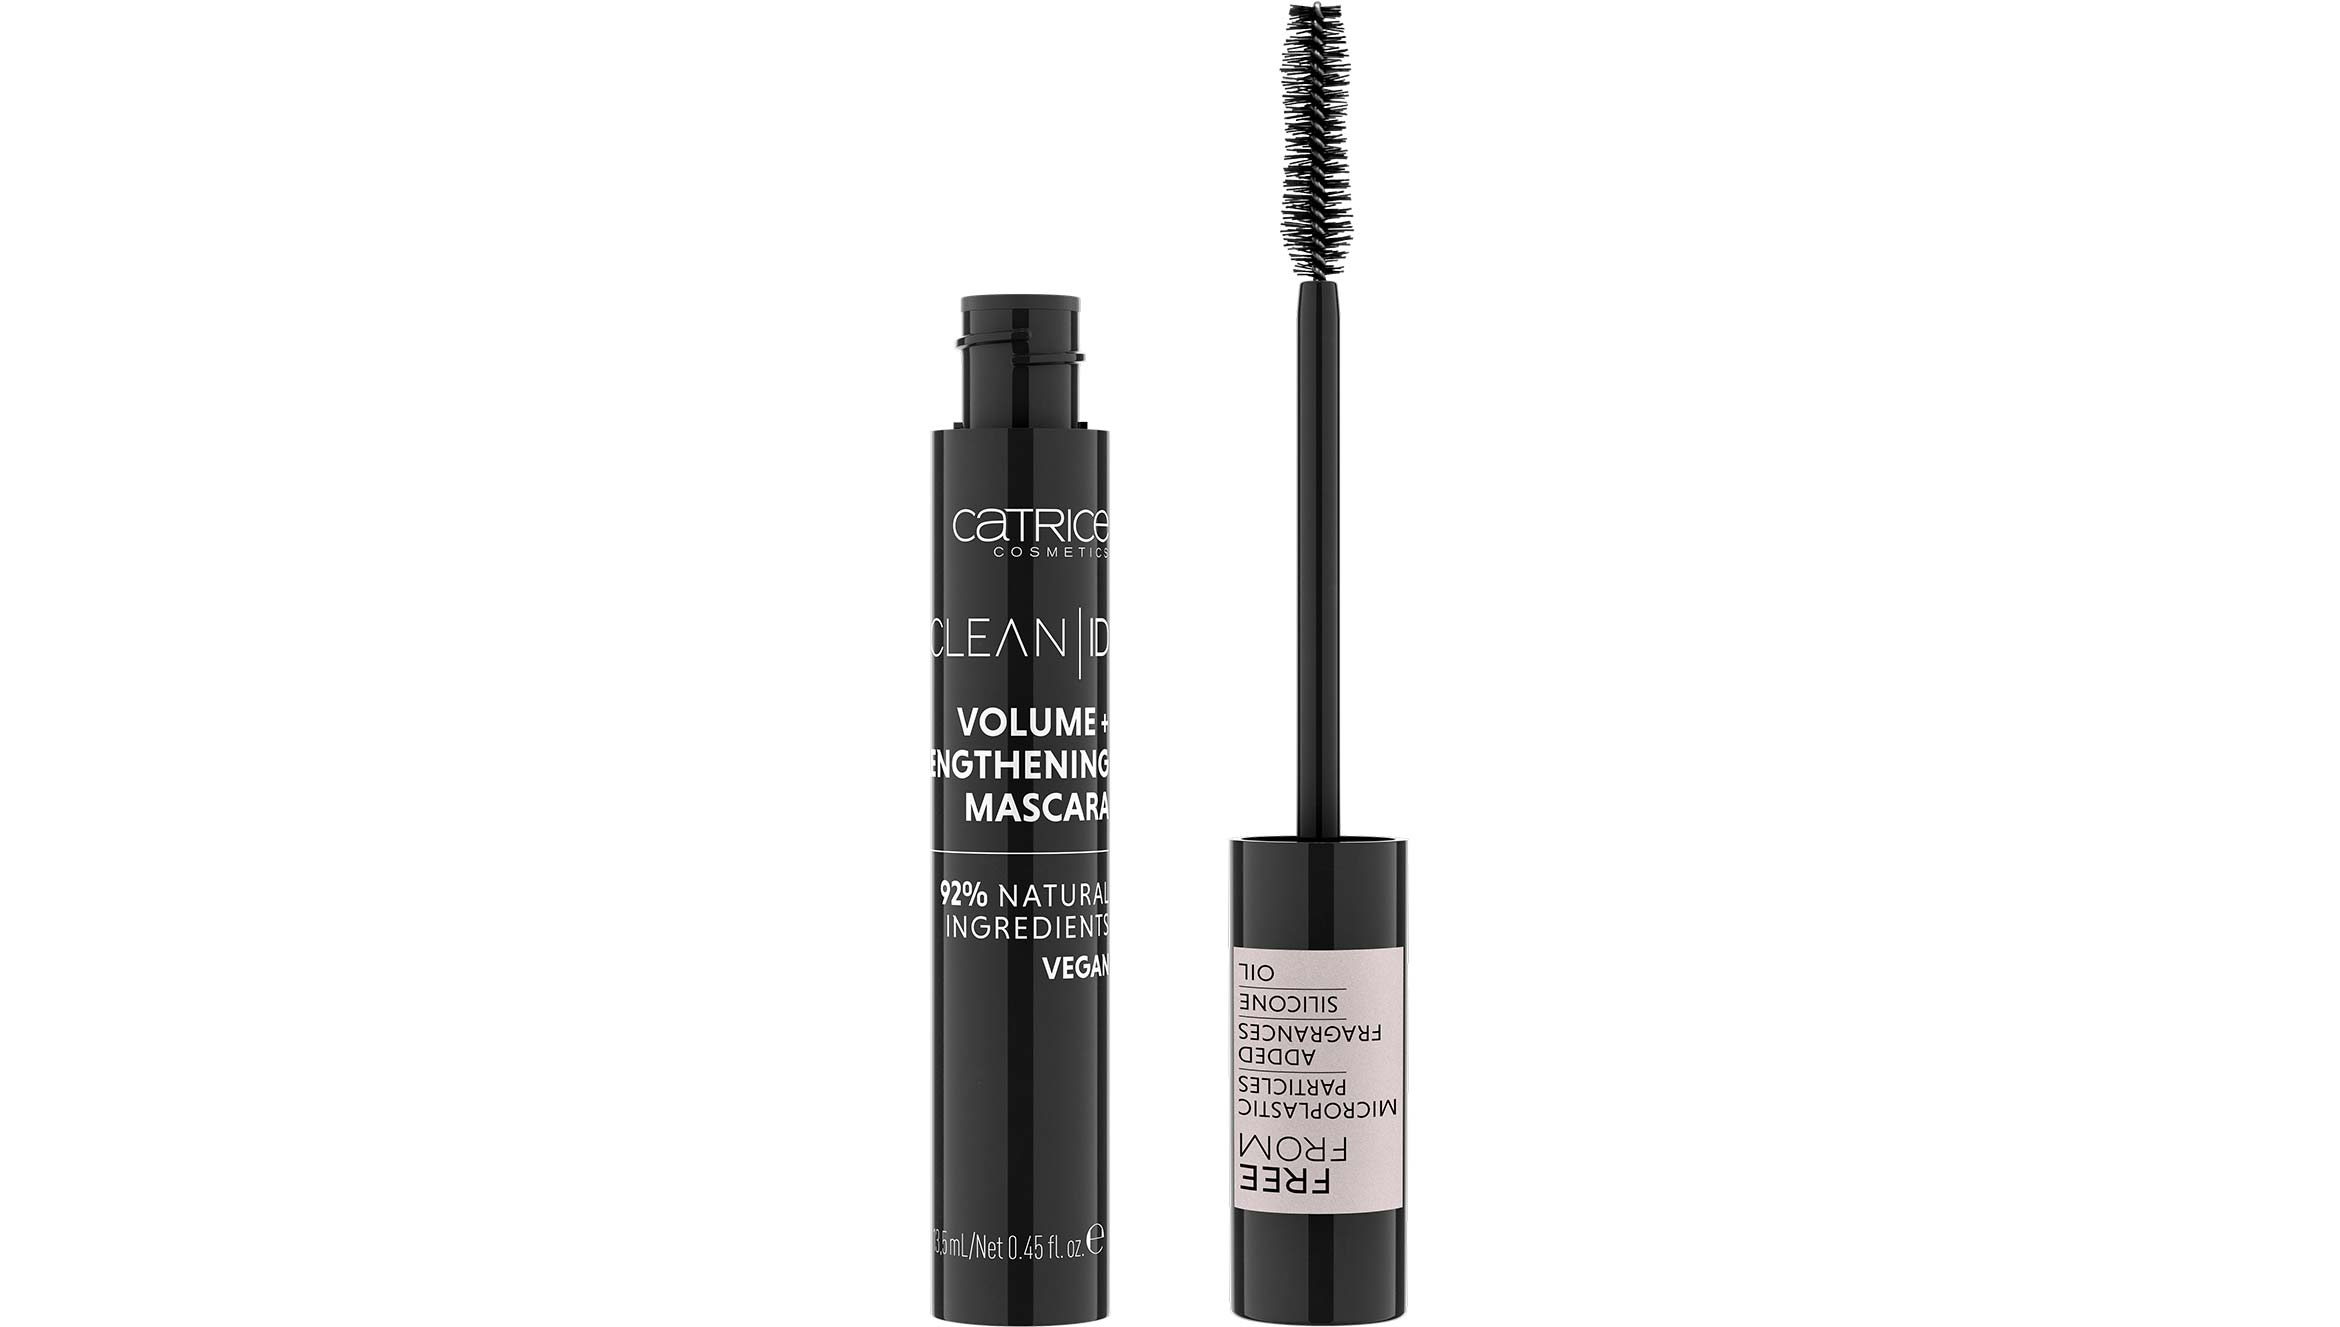 catrice-clean-id-volume-lengthening-mascara